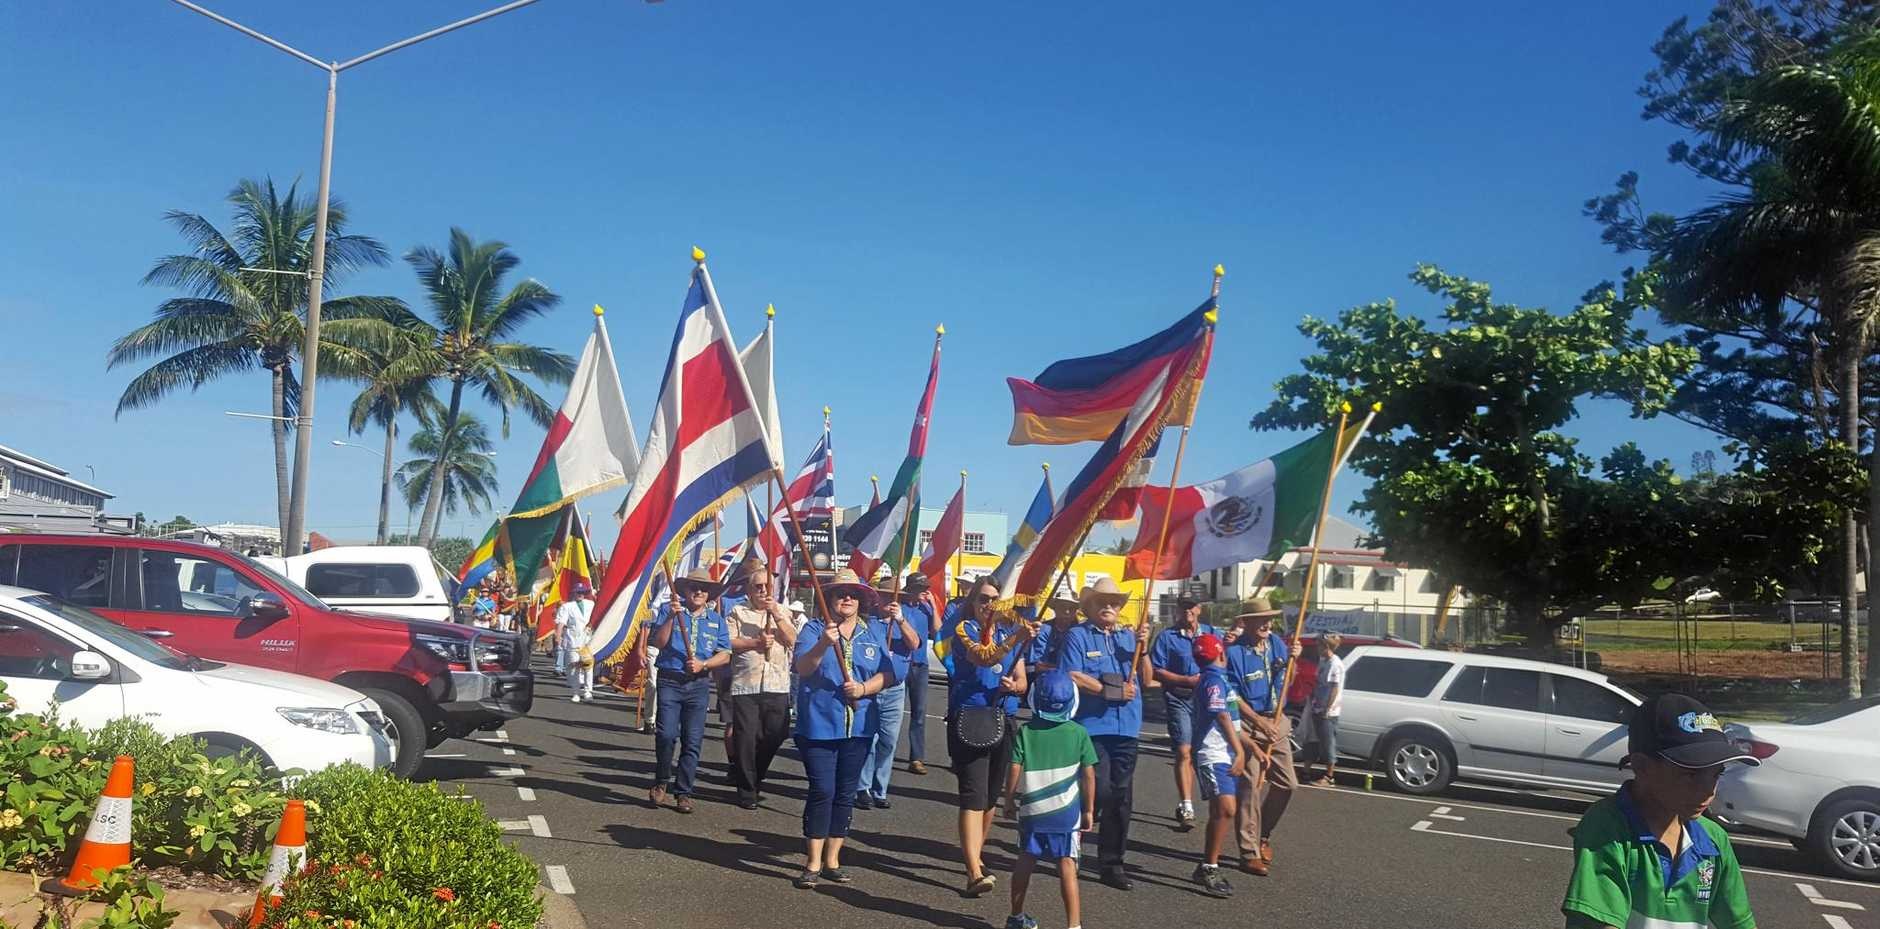 UNITED: Yeppoon Lions, lionesses and visiting lions, led a 200-strong, colourful parade in James Street, featuring 93 international flags and many banners  voluntary and essential service organisations.